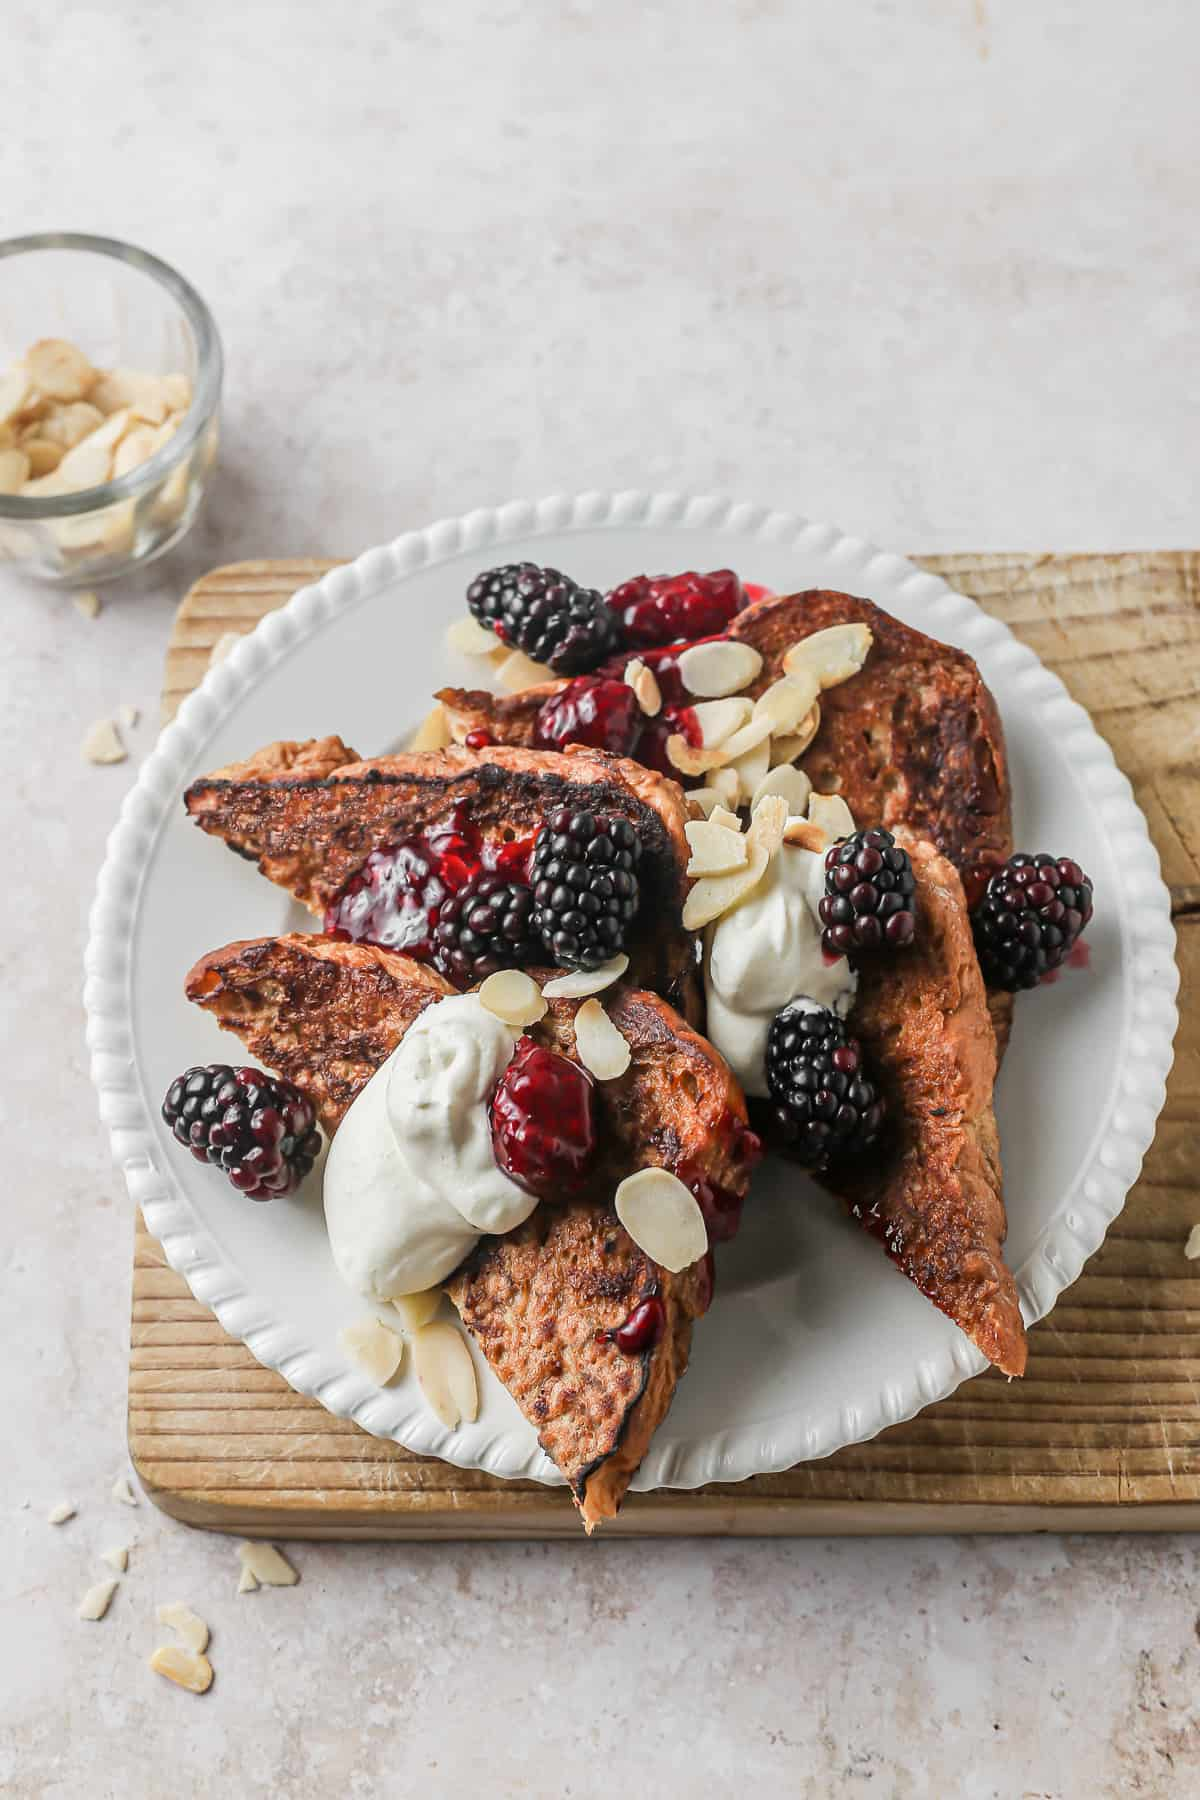 Earl Grey French Toast slices on a plate served with cream and blackberries